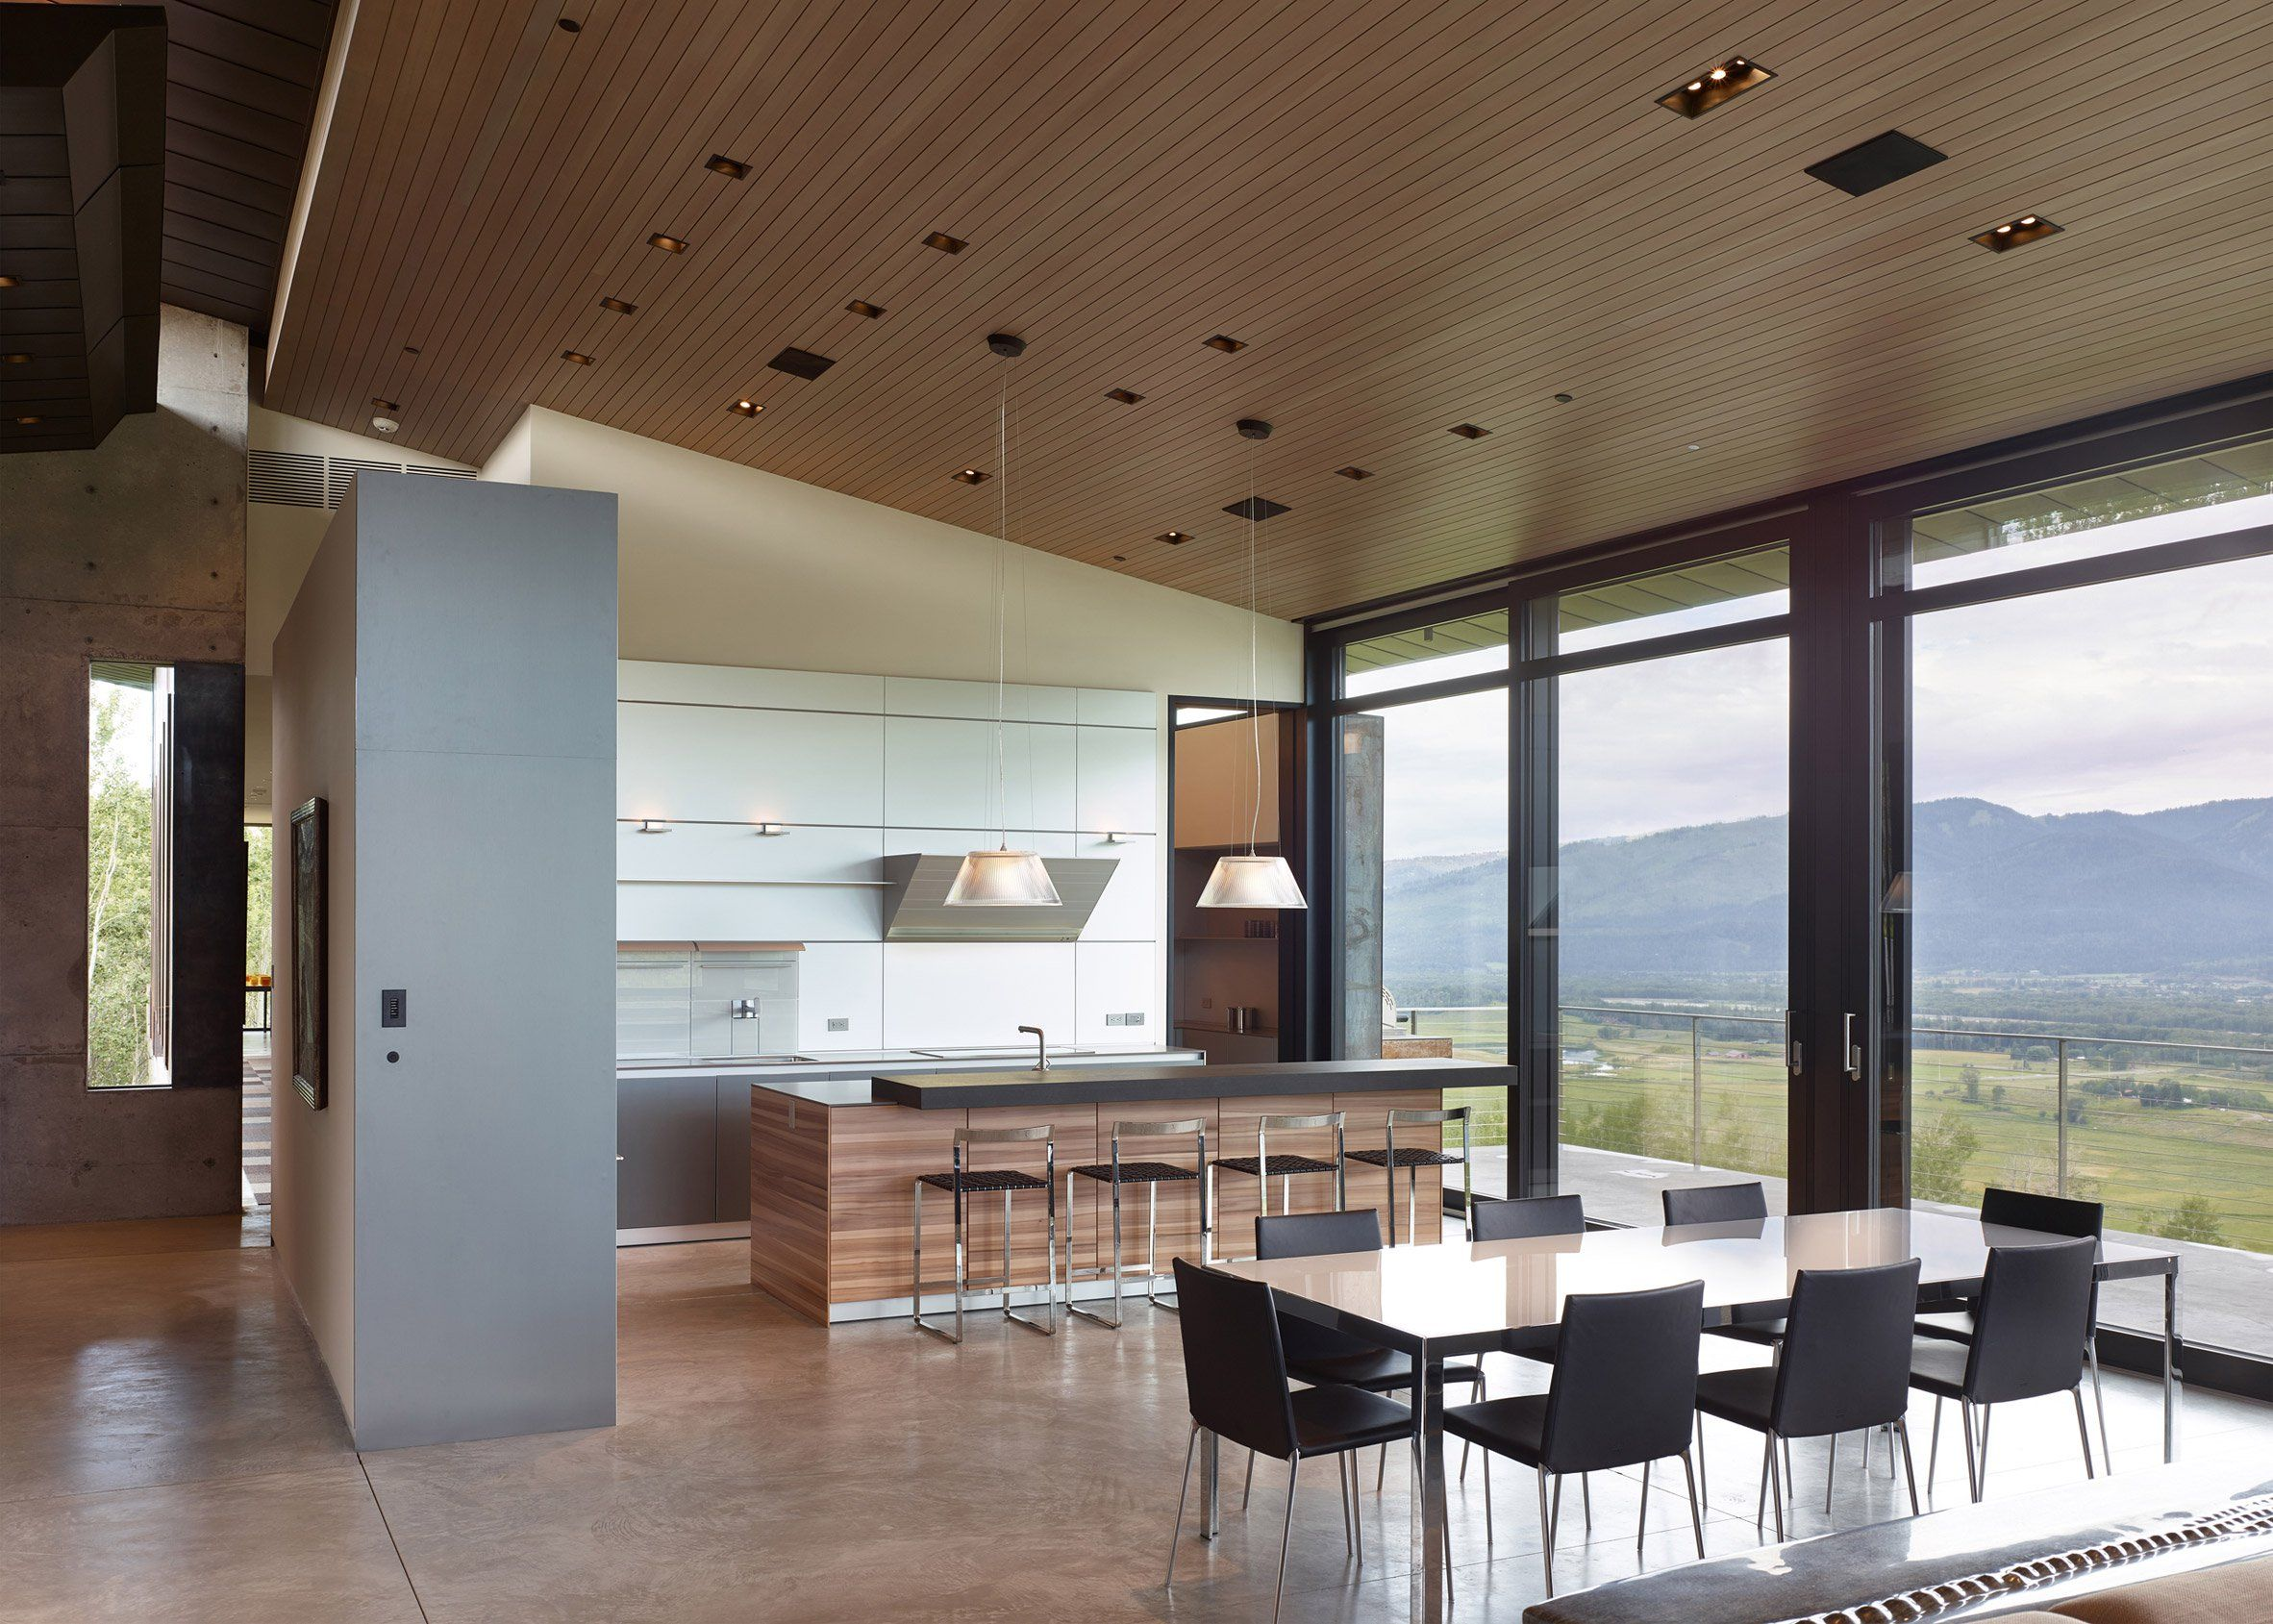 Floor To Ceiling Windows Which Frame Views Of The Scenic Terrain Are